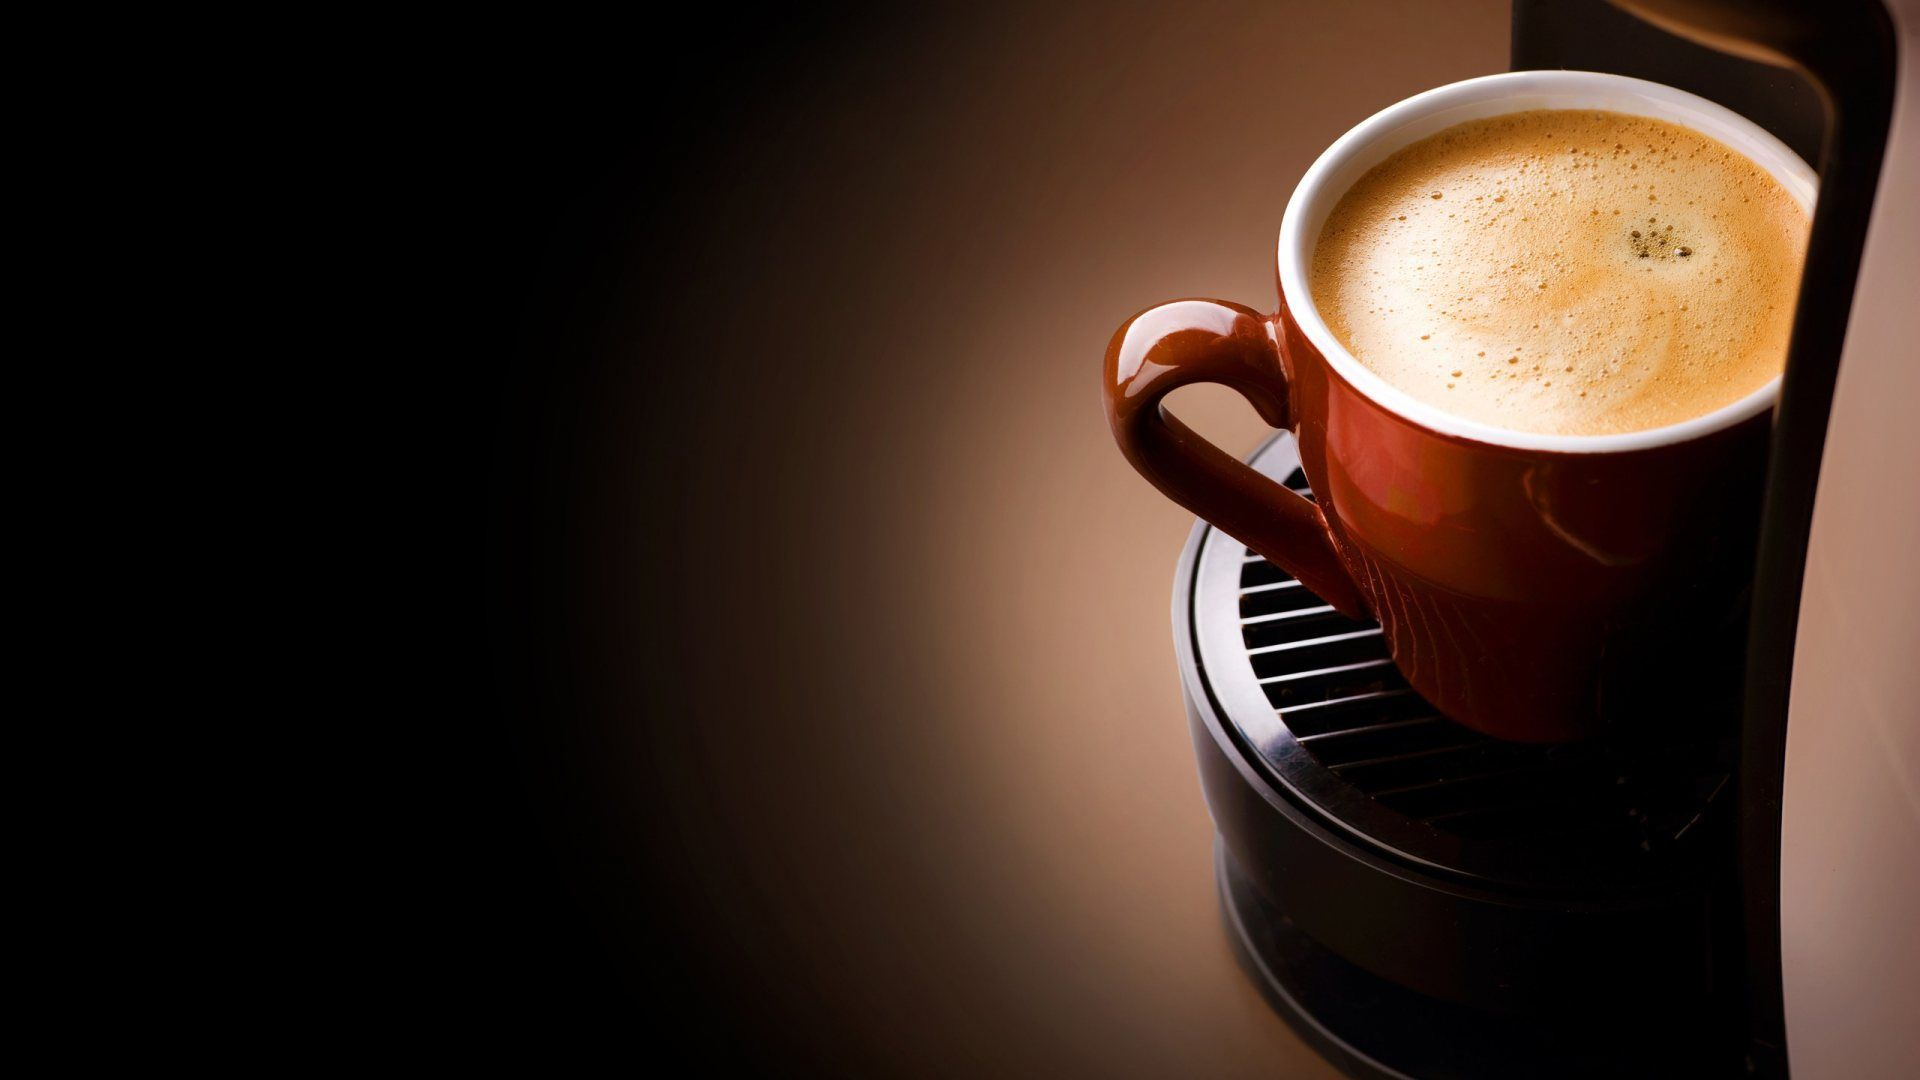 coffee cup wallpaper 6609 full hd wallpaper desktop - res